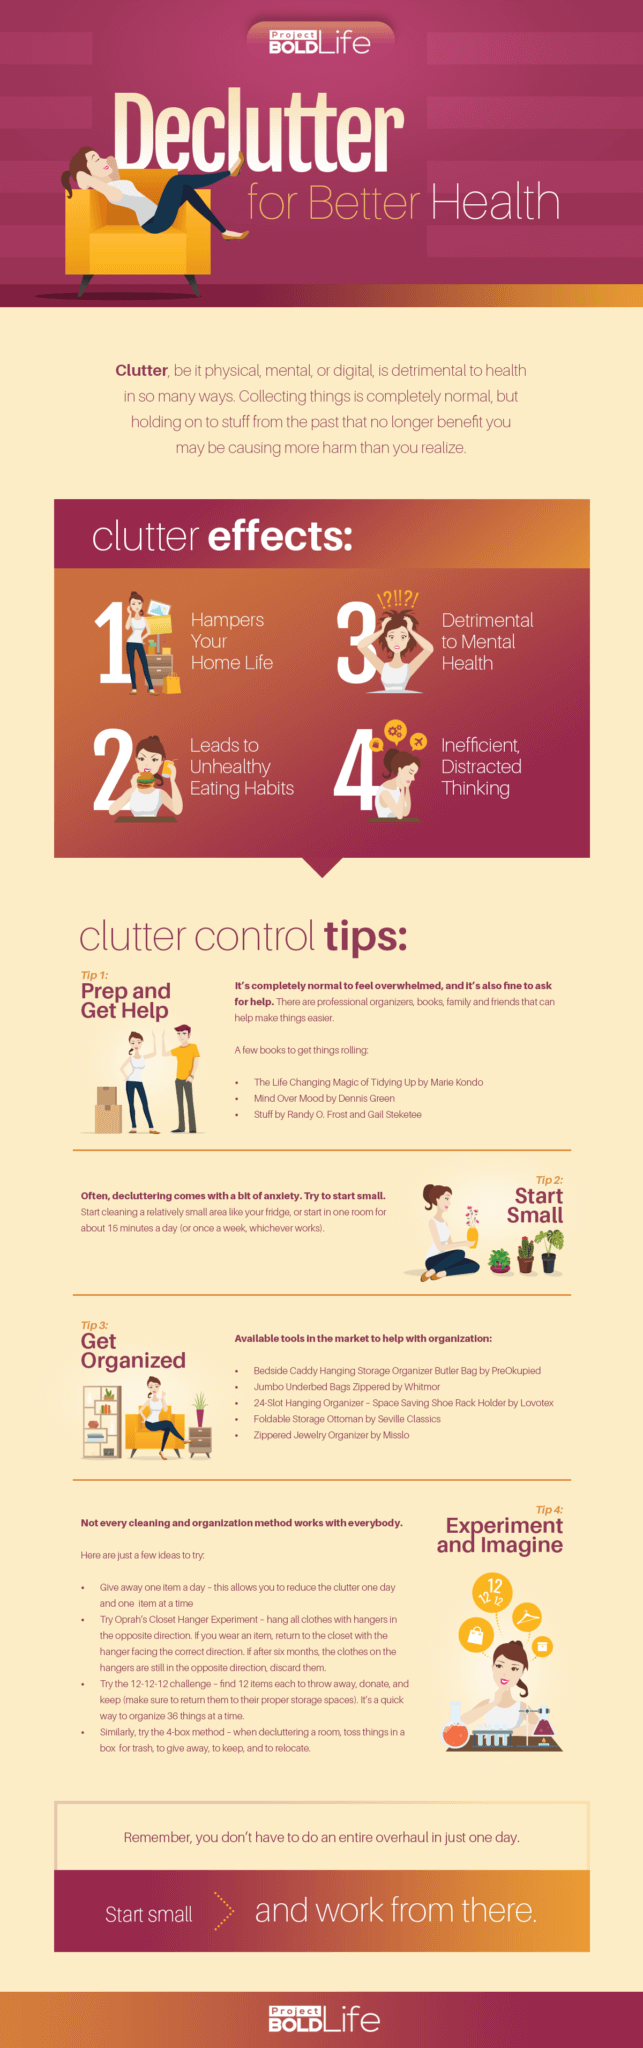 declutter for better health infographic